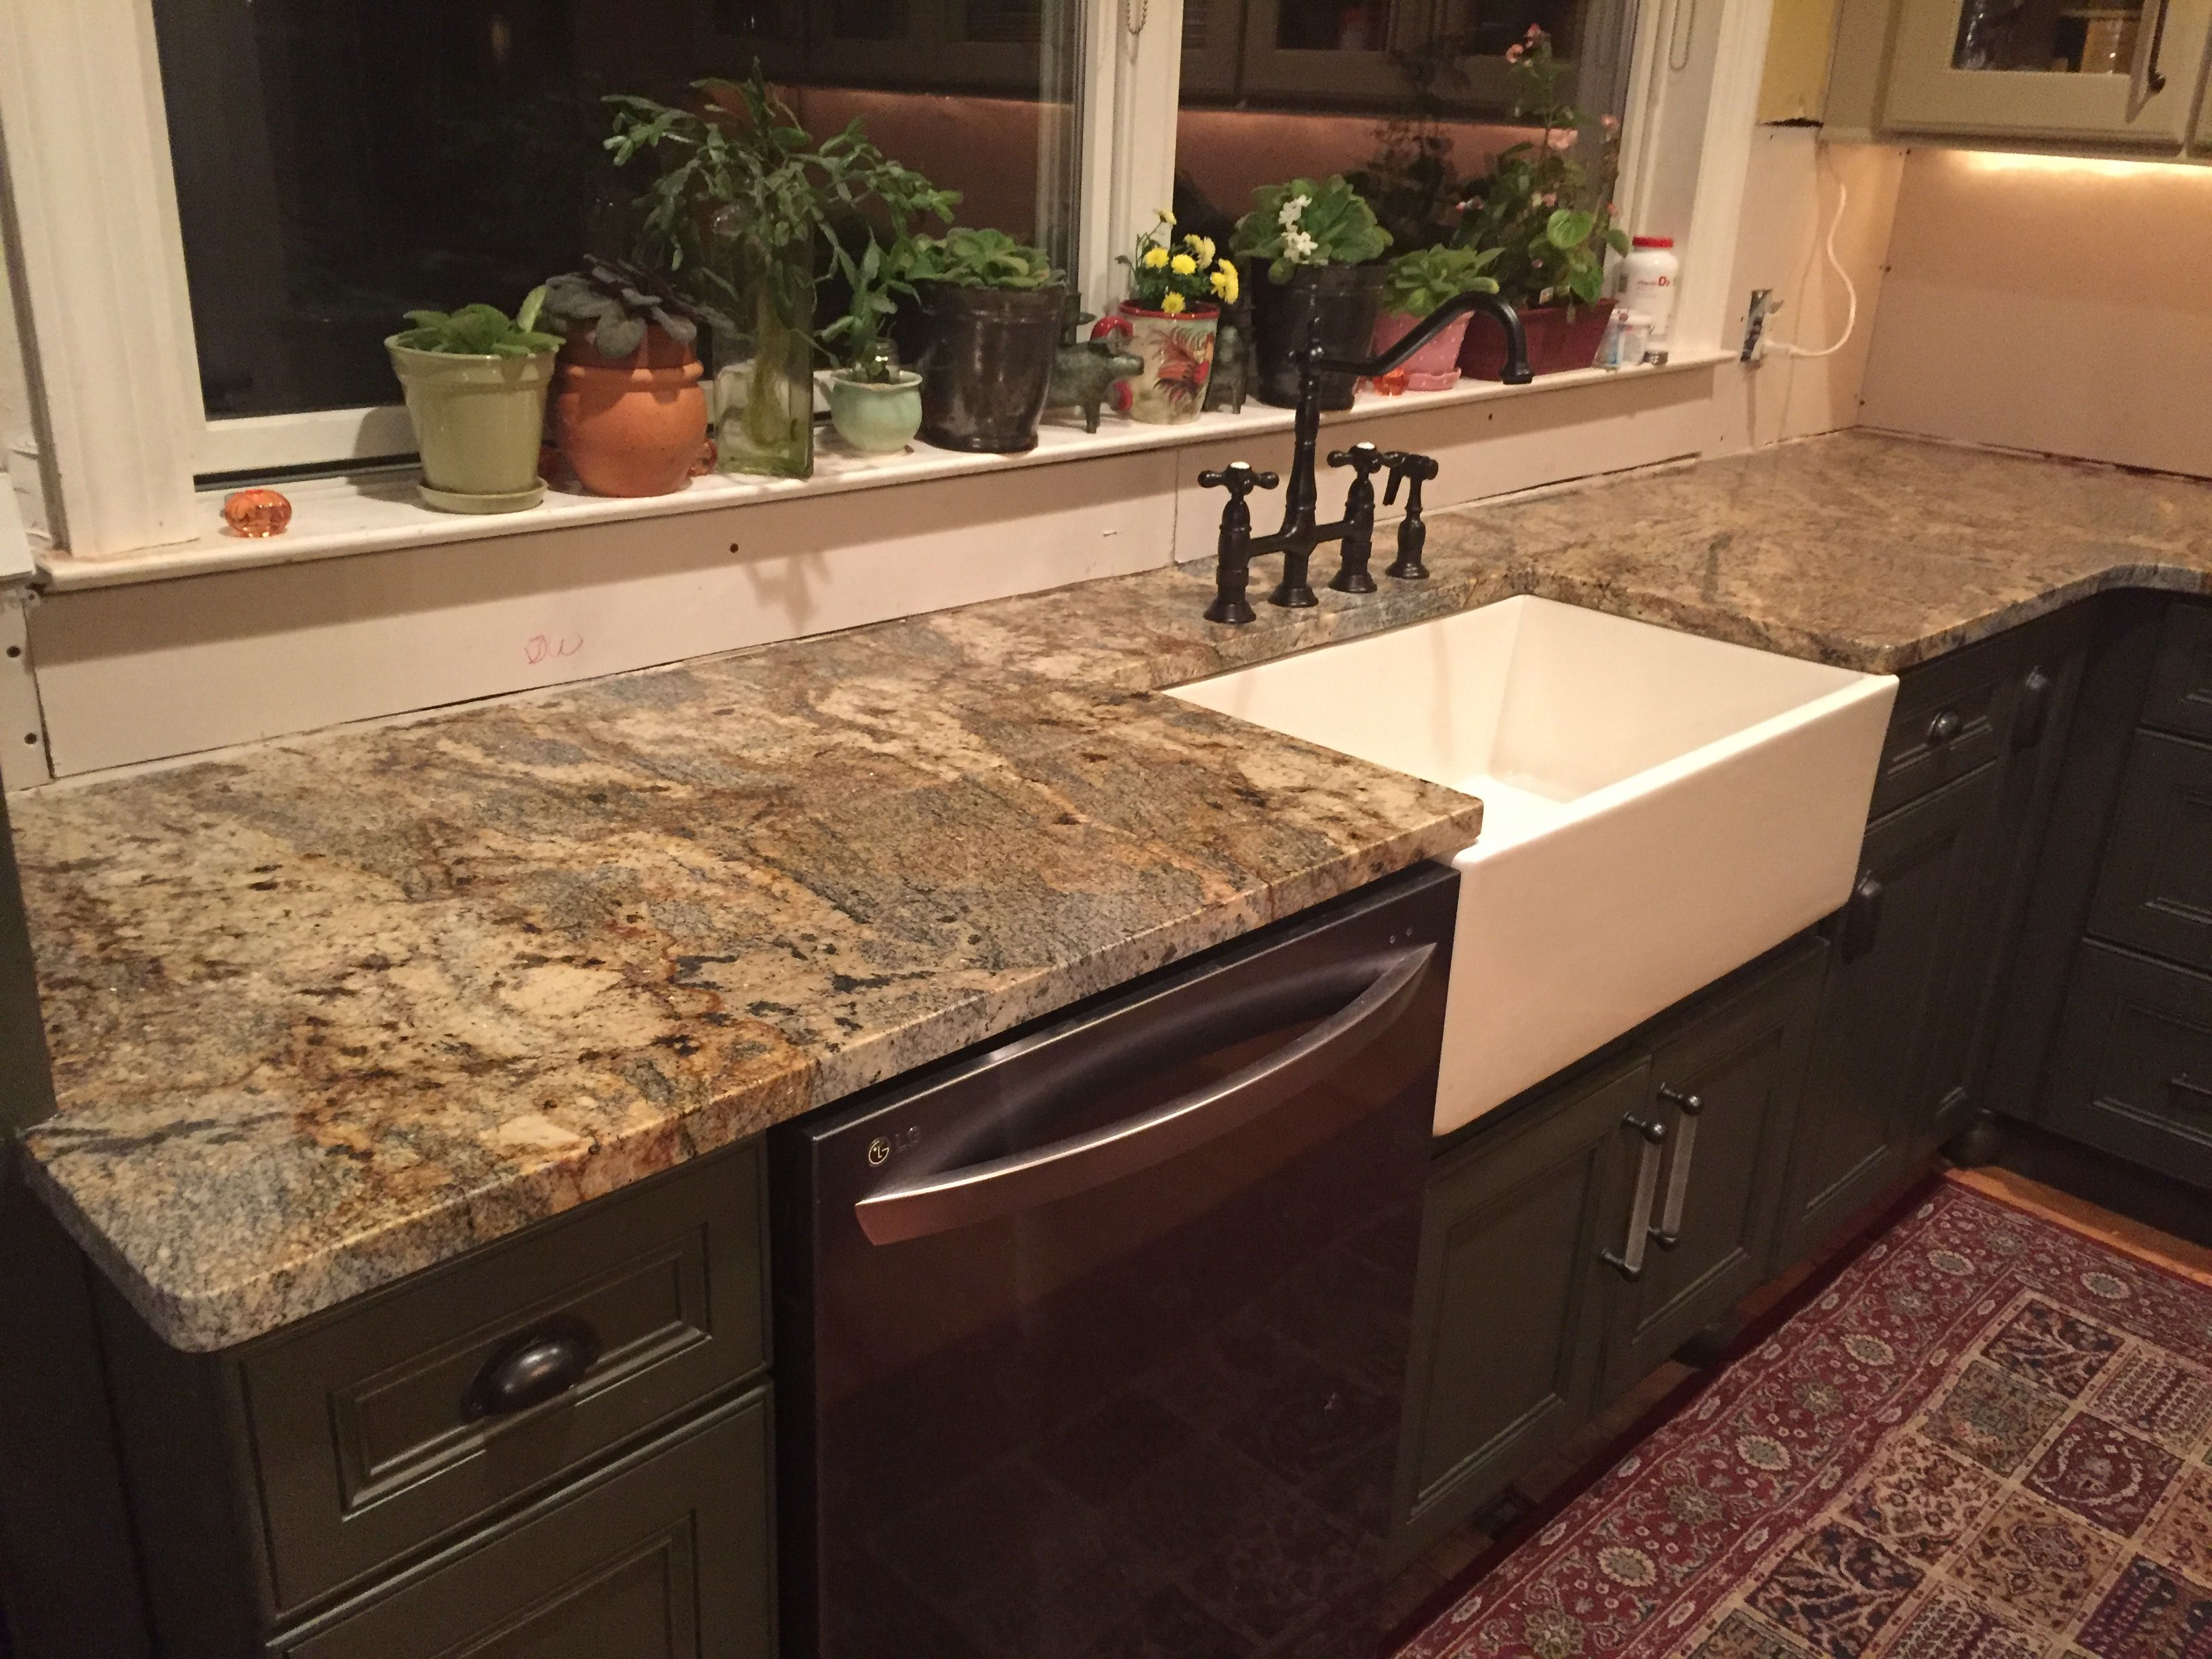 New granite countertop lapidus gold lowe 39 s sensa lowes Lowes countertops